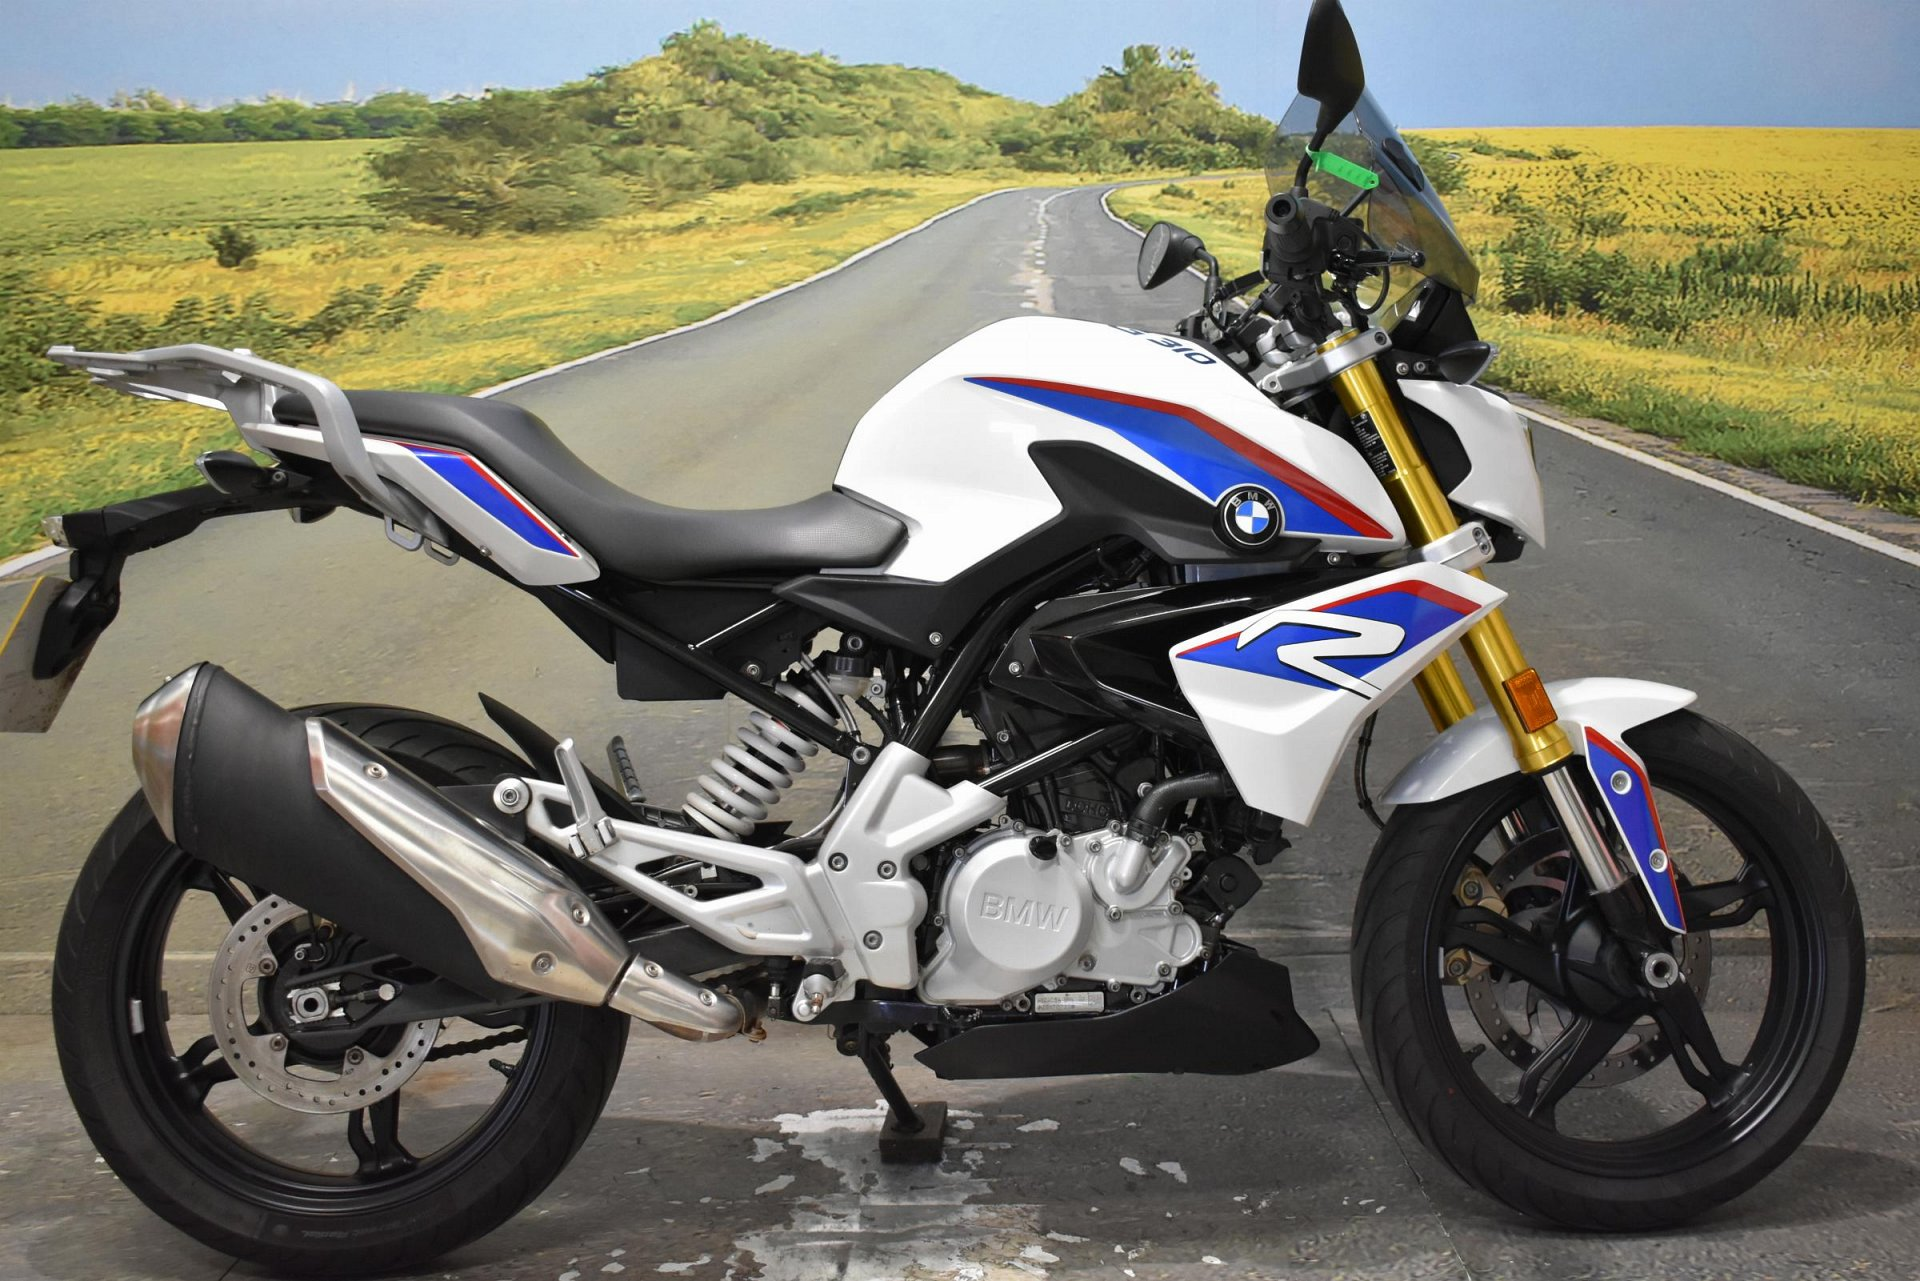 2018 BMW G 310 R for sale in Derbyshire